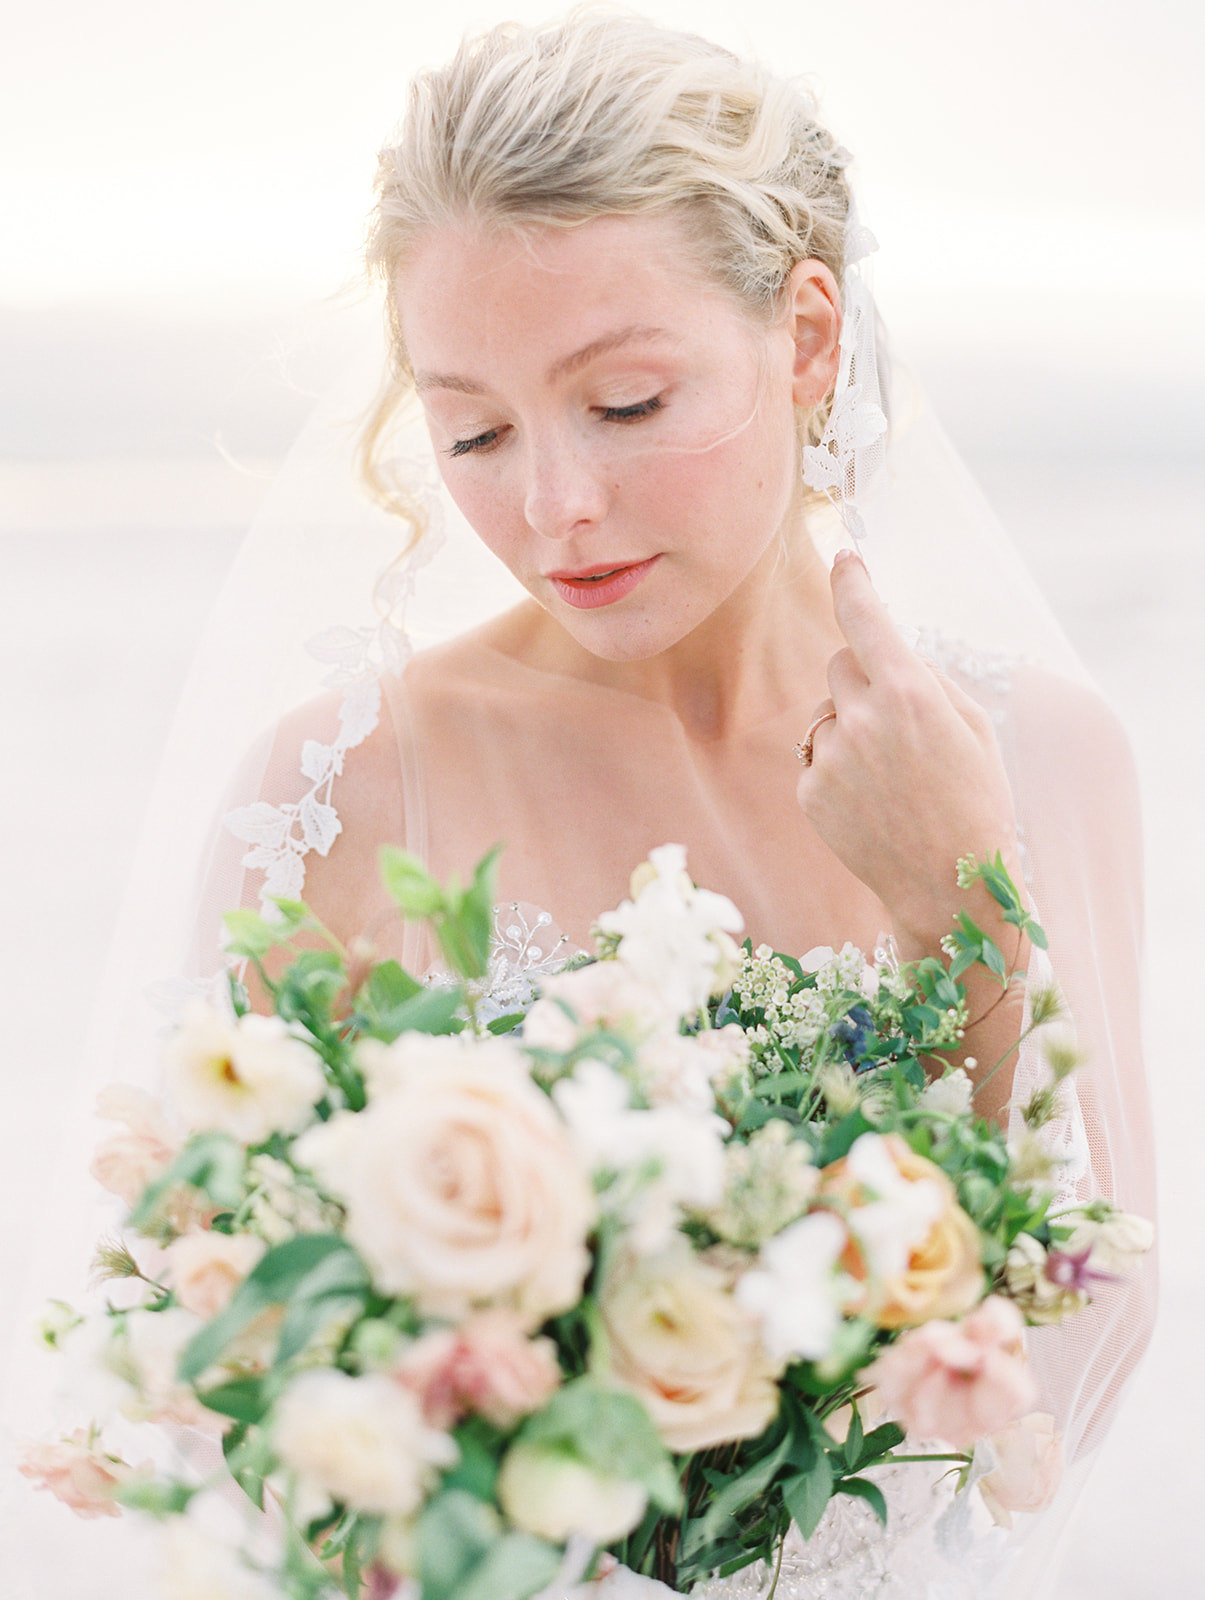 TIMELESS & ETHEREAL INTIMATE WEDDING